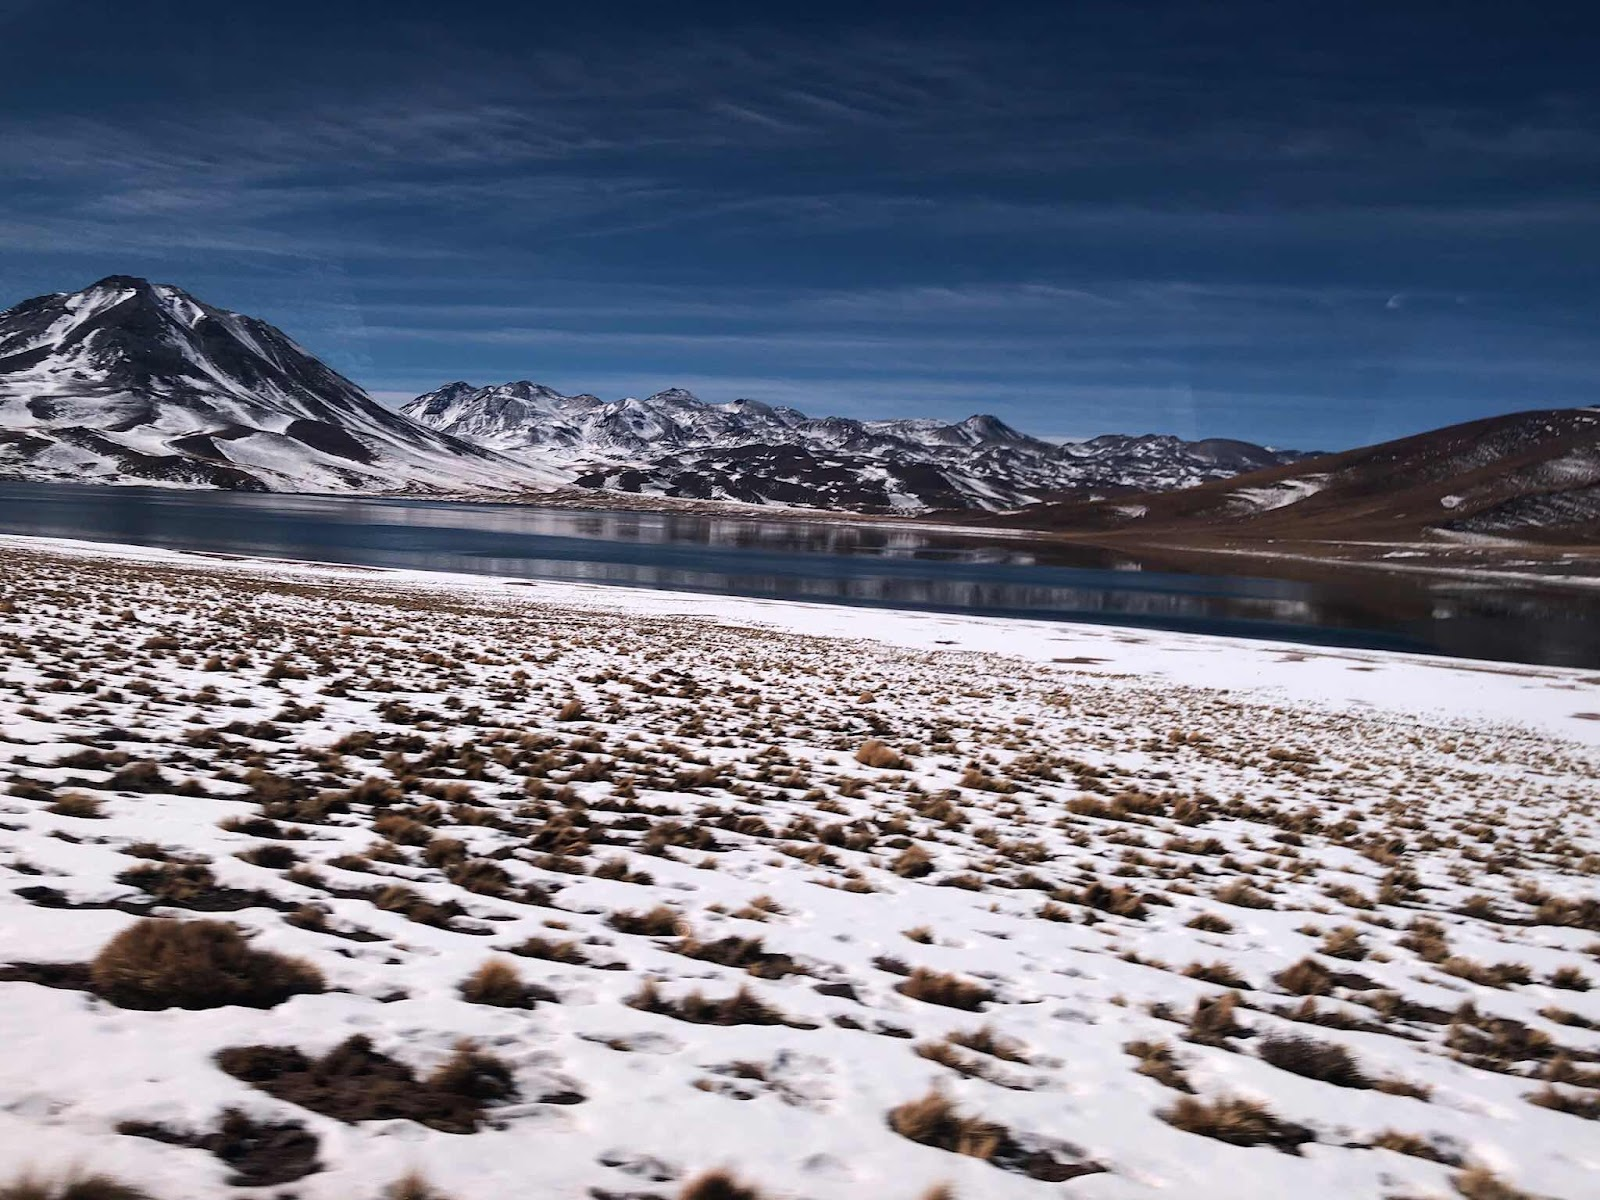 Snow and Ice and water in the high altitude Atacama Desert (Source: Palmia Observatory)